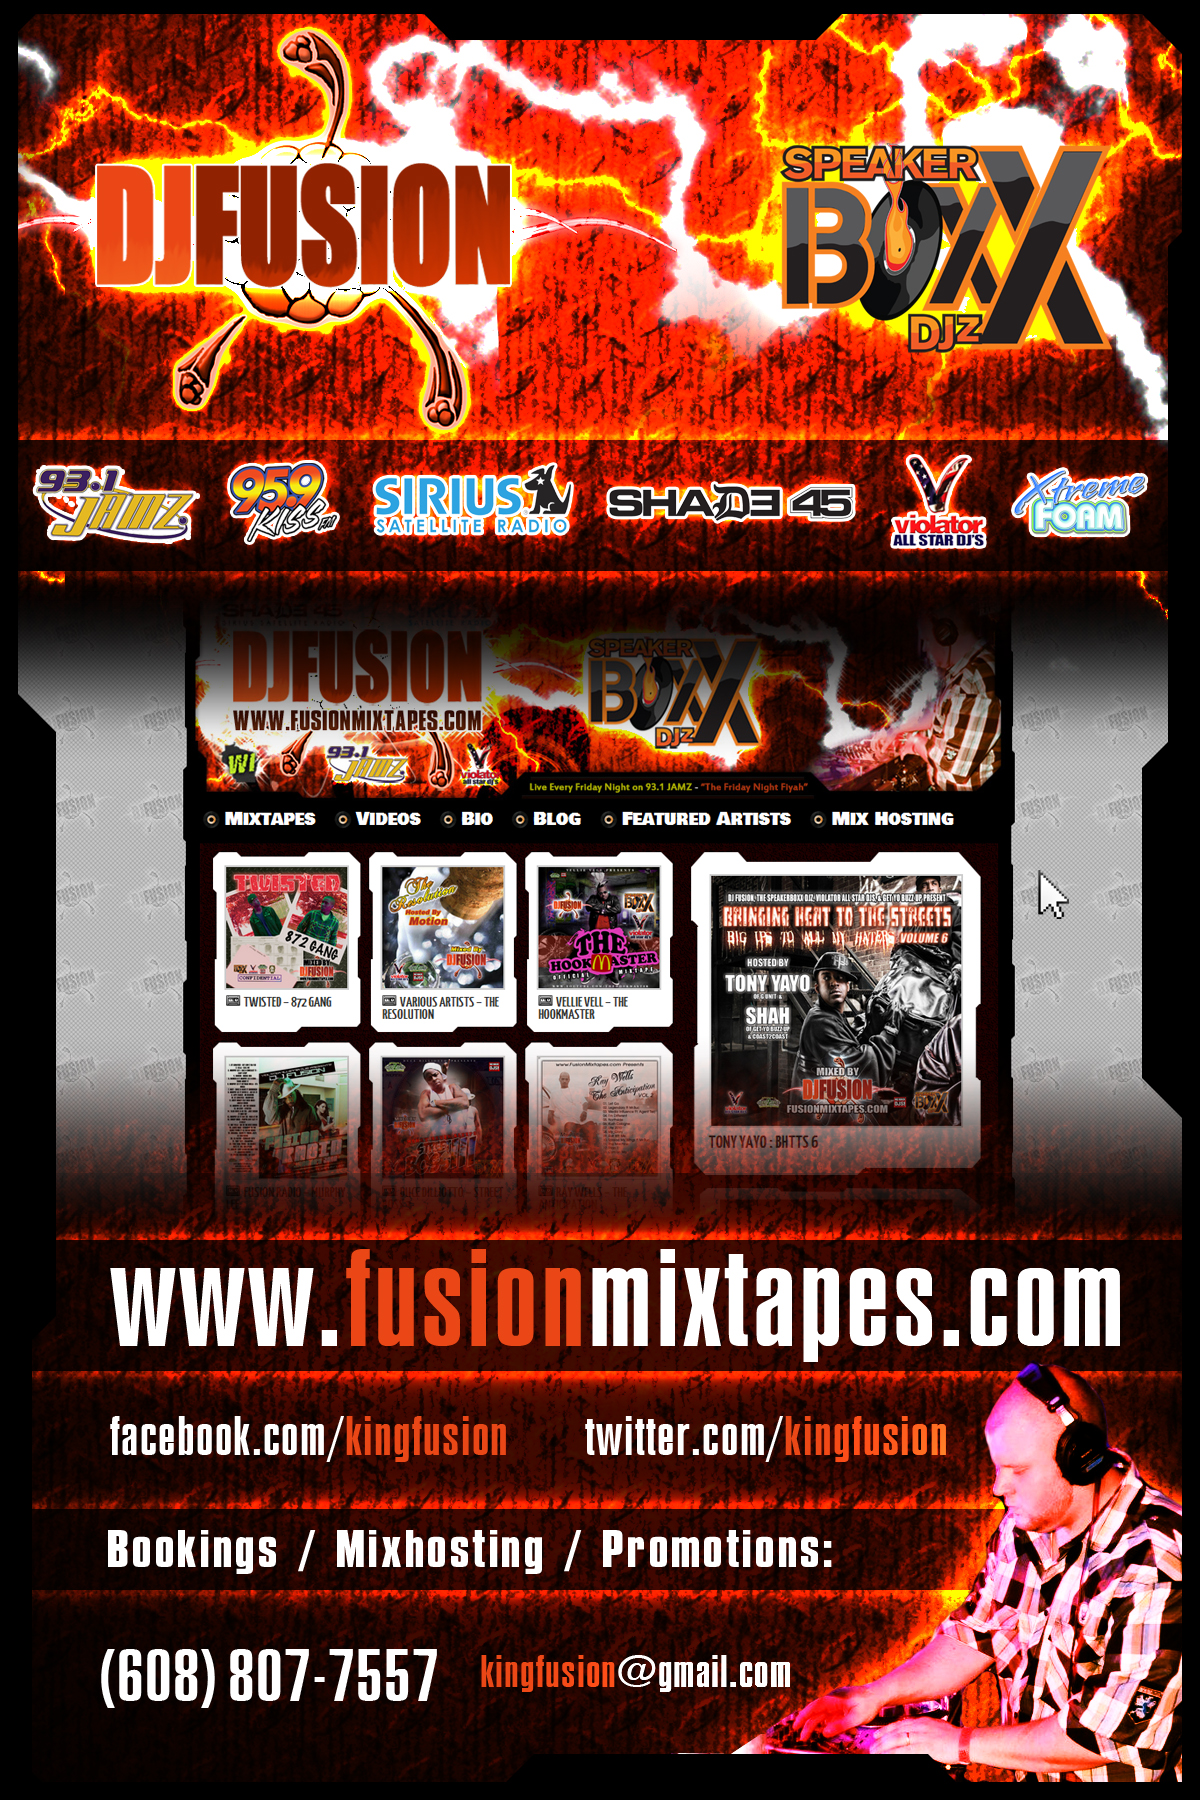 fusion-mixtapes-flyer-side-a-jpg